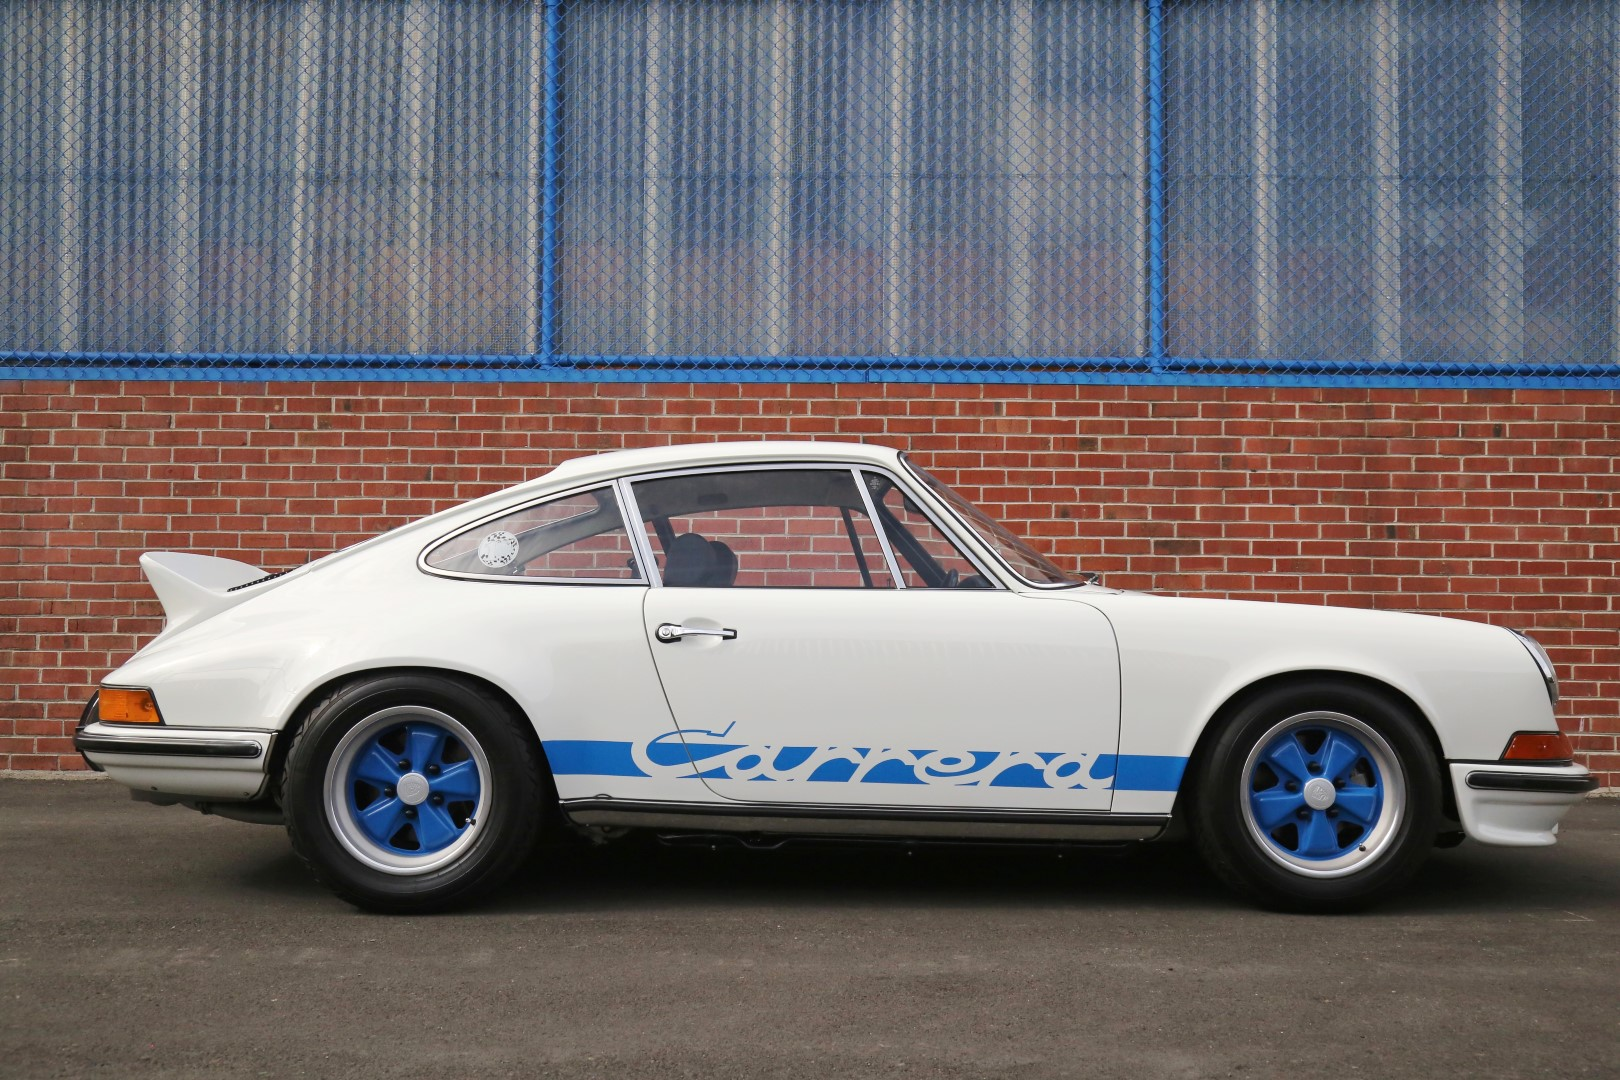 Porsche-911-Carrera-RS-2.7-1973-for-sale-11